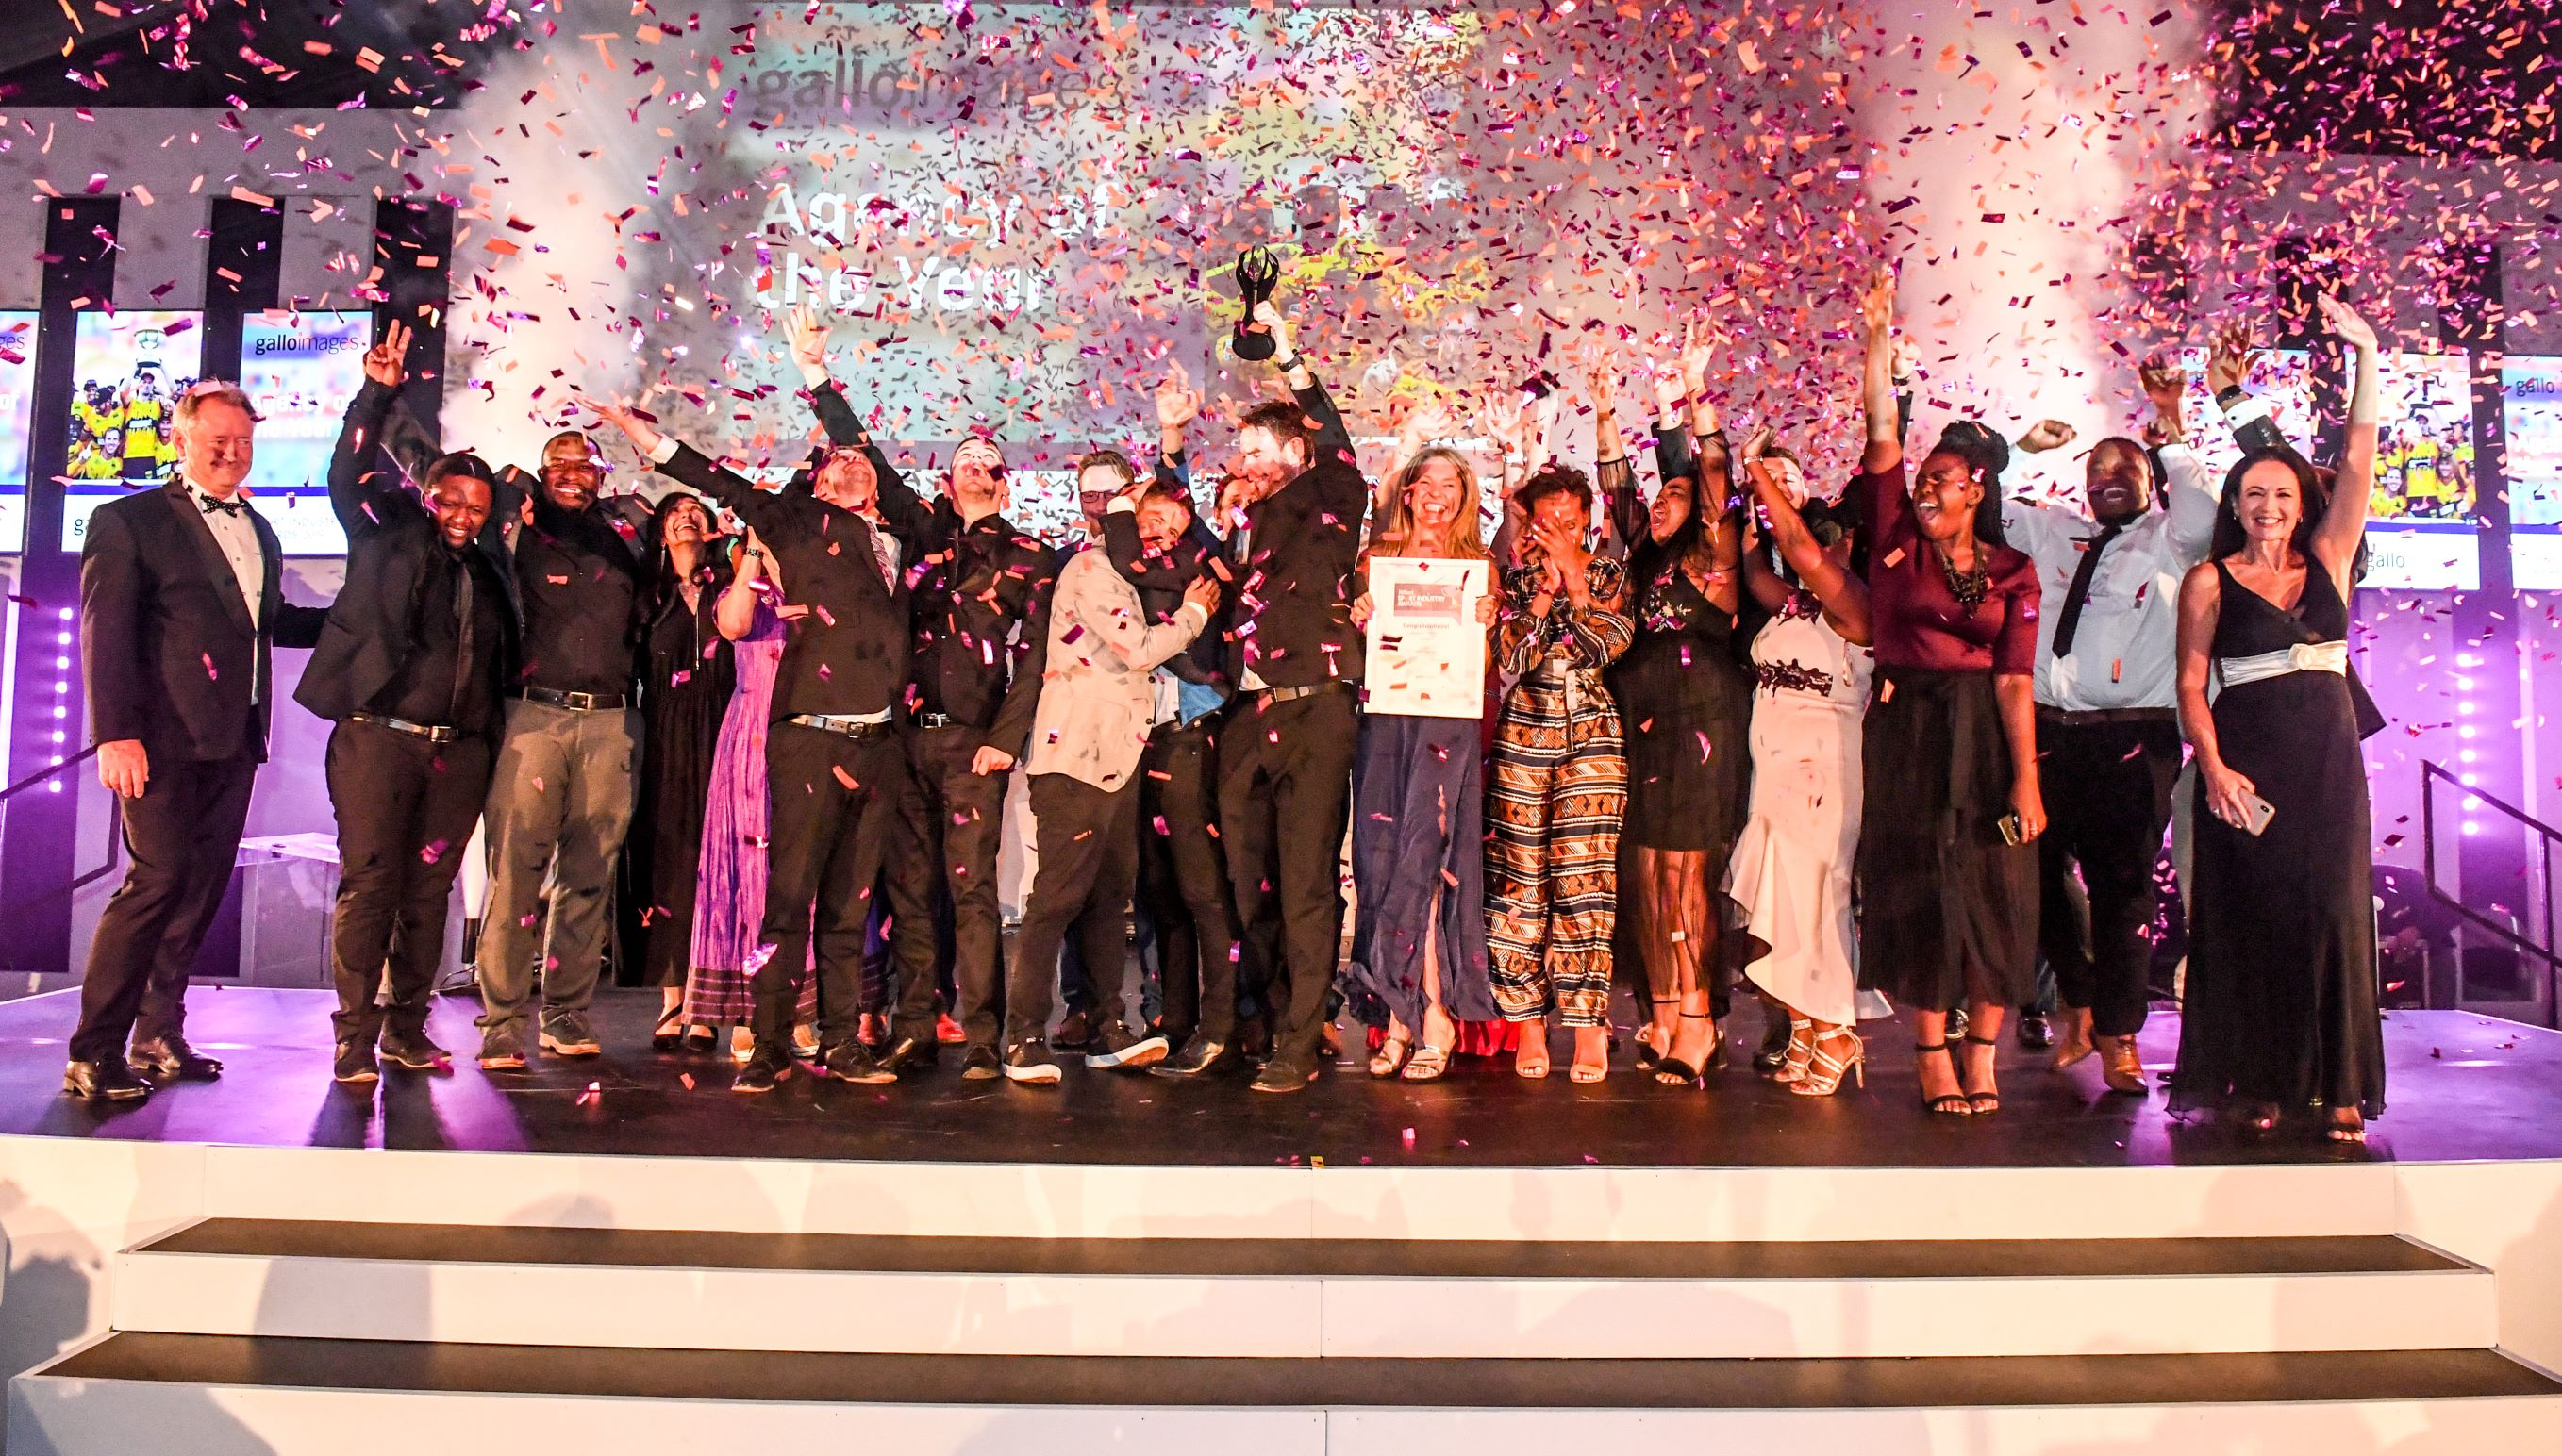 SUBMISSIONS ARE NOW OPEN FOR THE 2021 HOLLARD SPORT INDUSTRY AWARDS